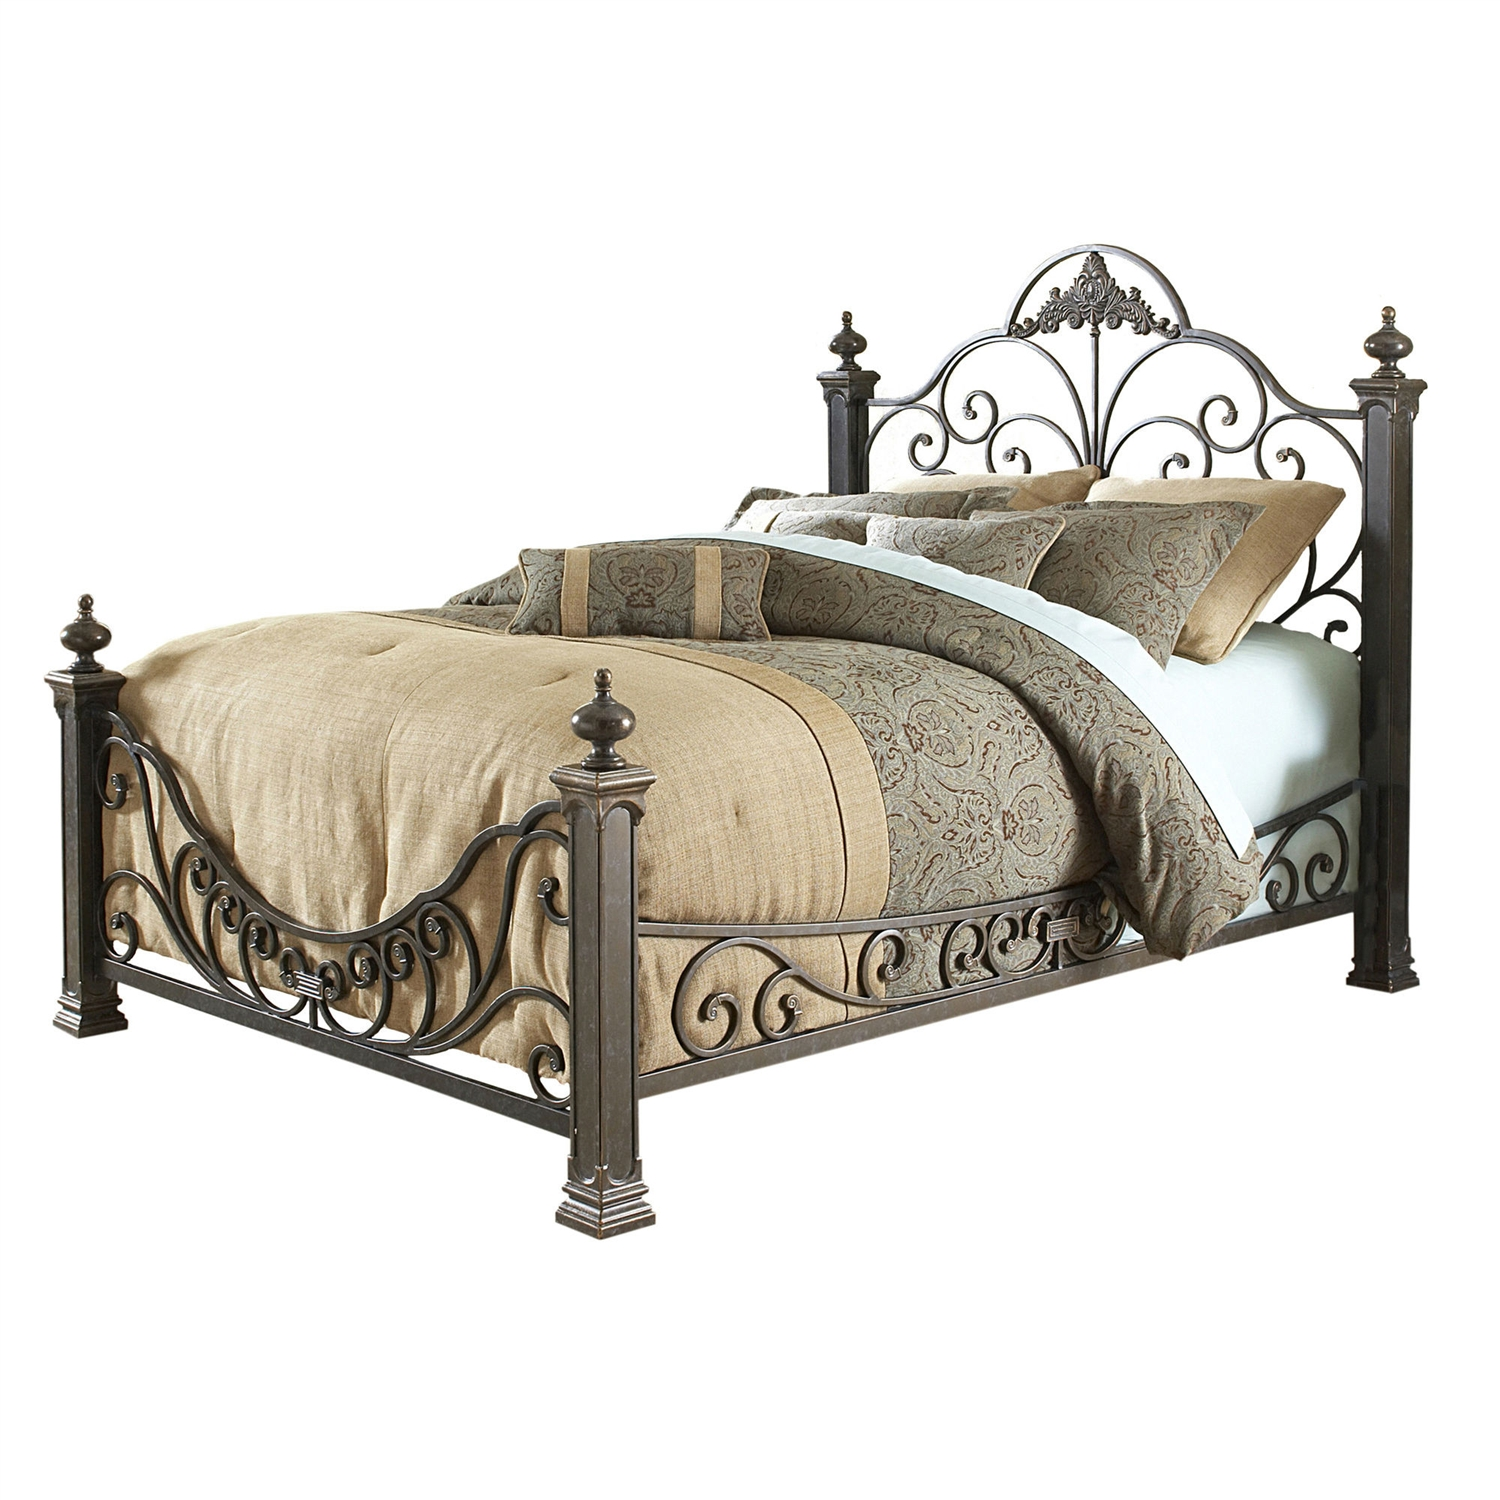 Queen Size Baroque Style Metal Bed With Headboard And Footboard Fastfurnishings